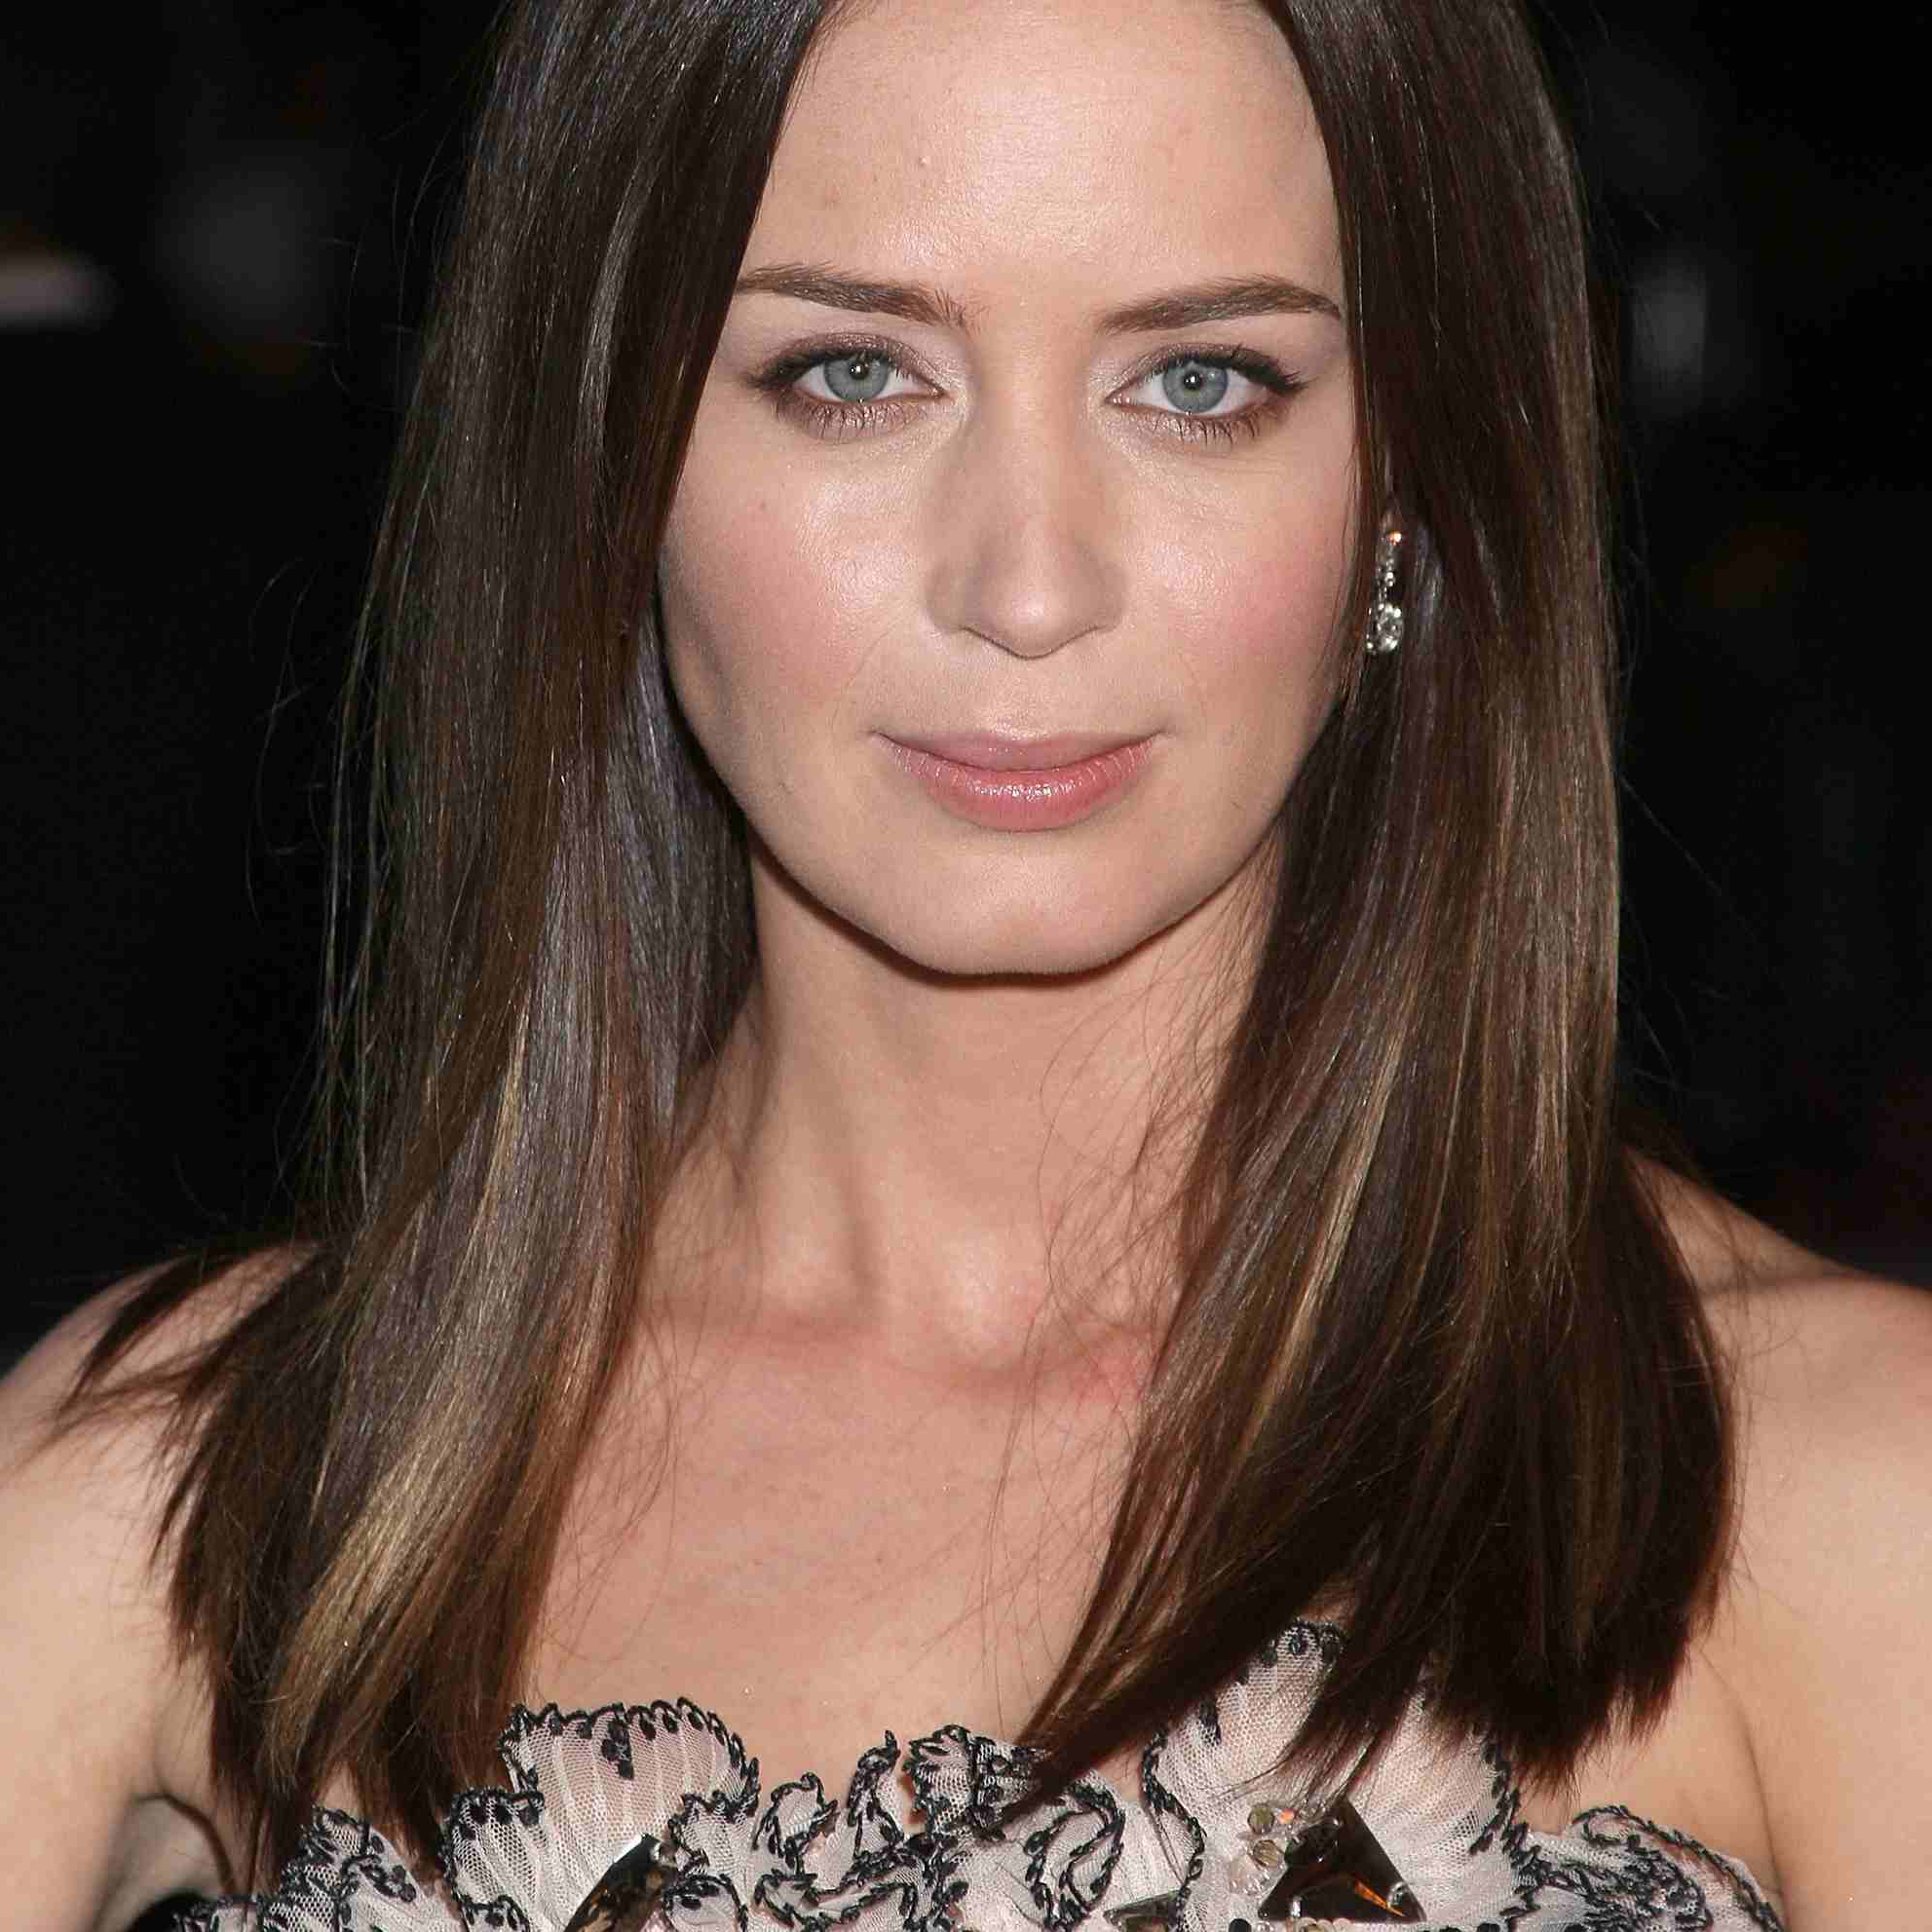 Most Current Sleek Straight Layered Haircuts In Hairstyles For Women With Long, Naturally Straight Hair (View 16 of 20)